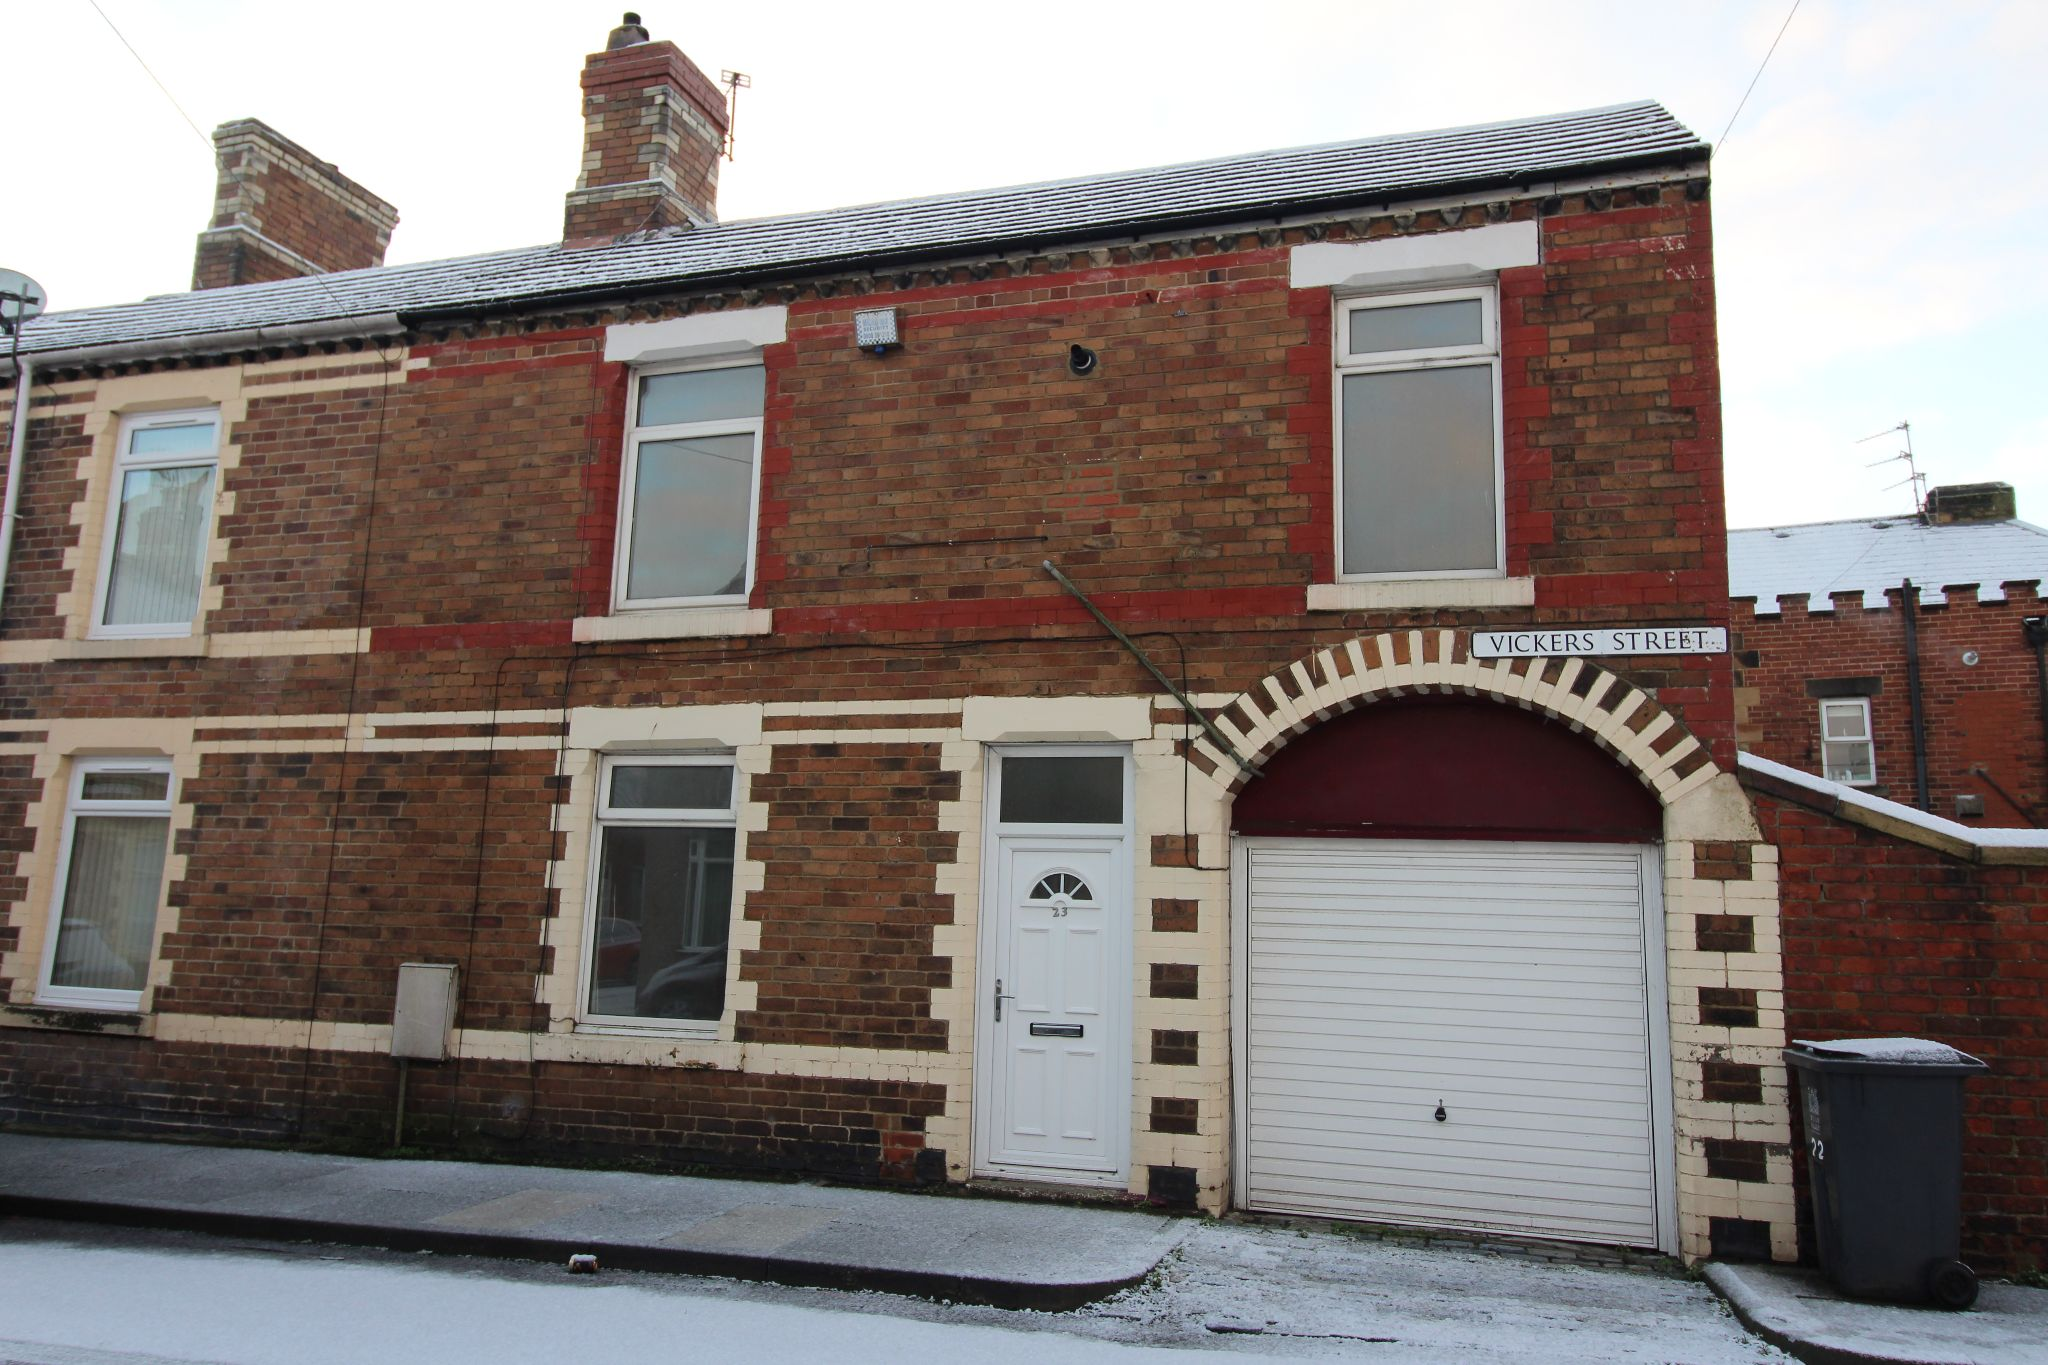 2 bedroom end terraced house Let Agreed in Bishop Auckland - Photograph 1.